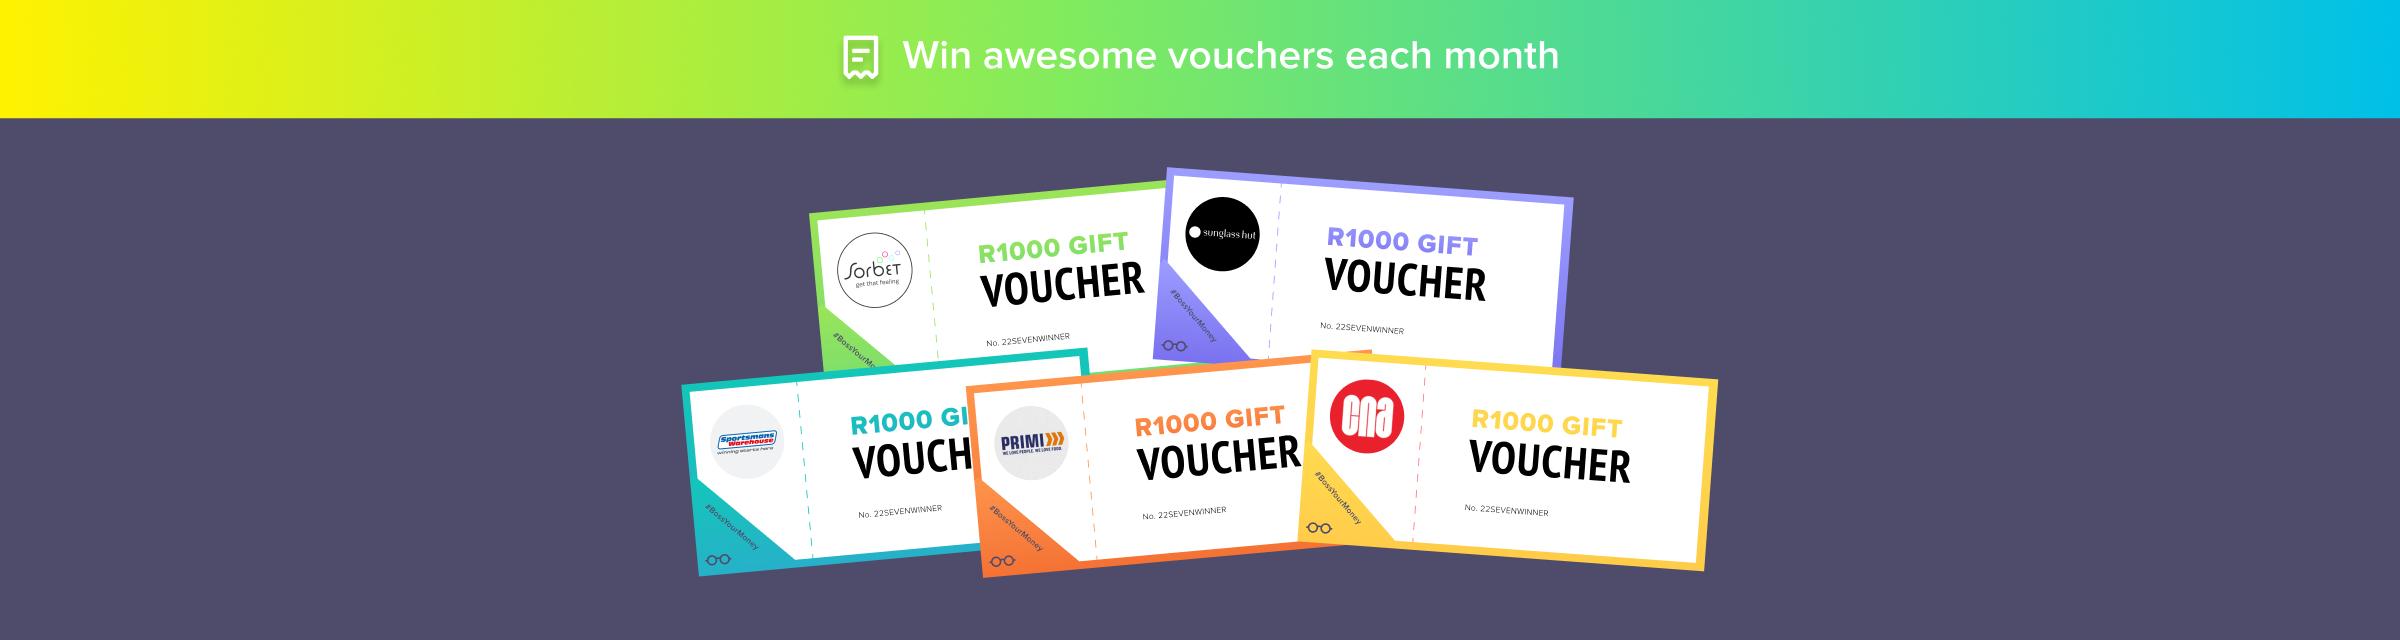 win voucher prizes